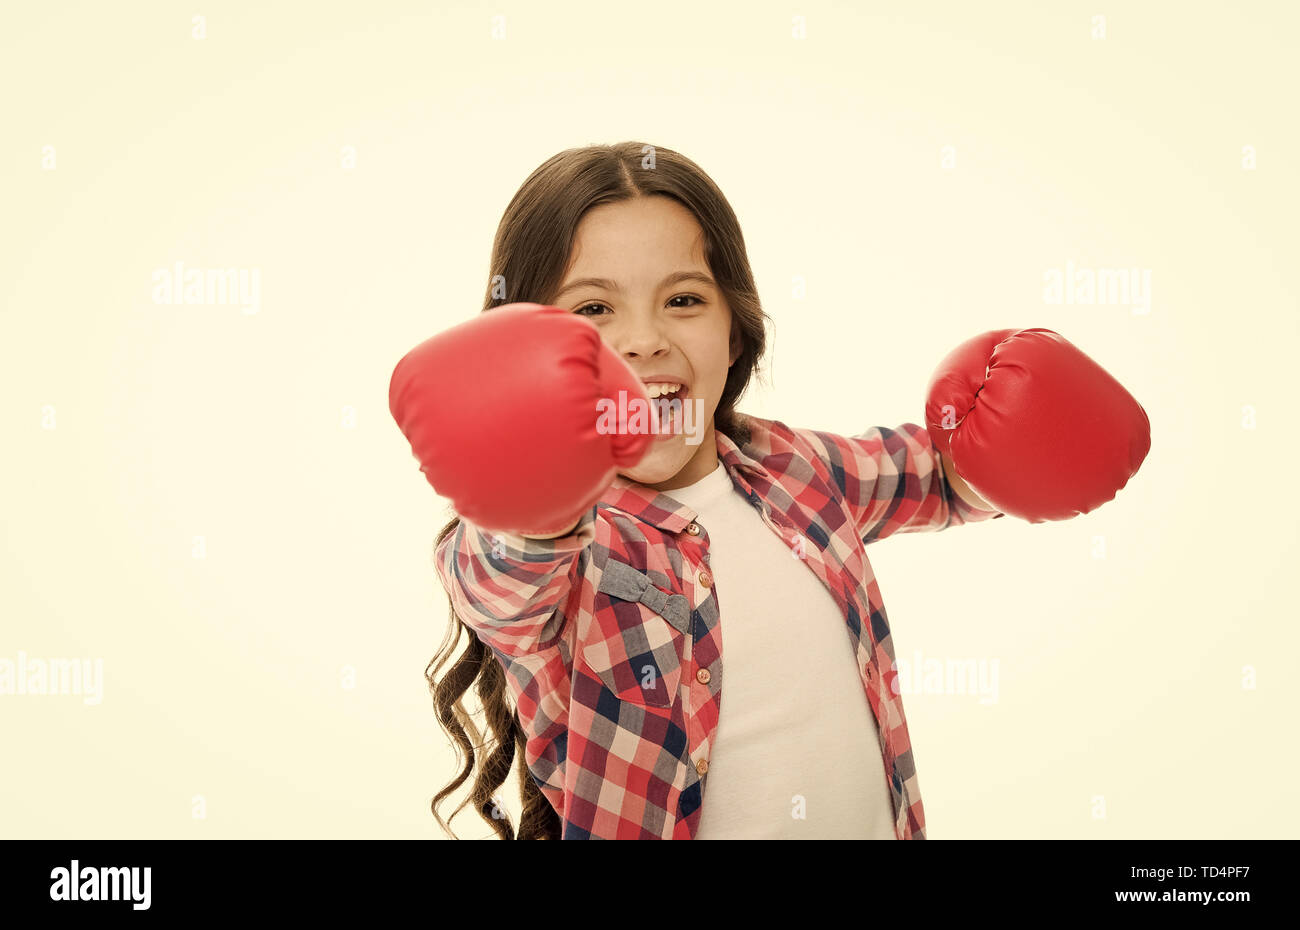 Girl power and feminism concept. Happy kid boxing in gloves isolated on white. Child boxer with long hair boxing for fun. Sport activity and fun leisure. Boxing skill practice. Feminist upbringing. - Stock Image